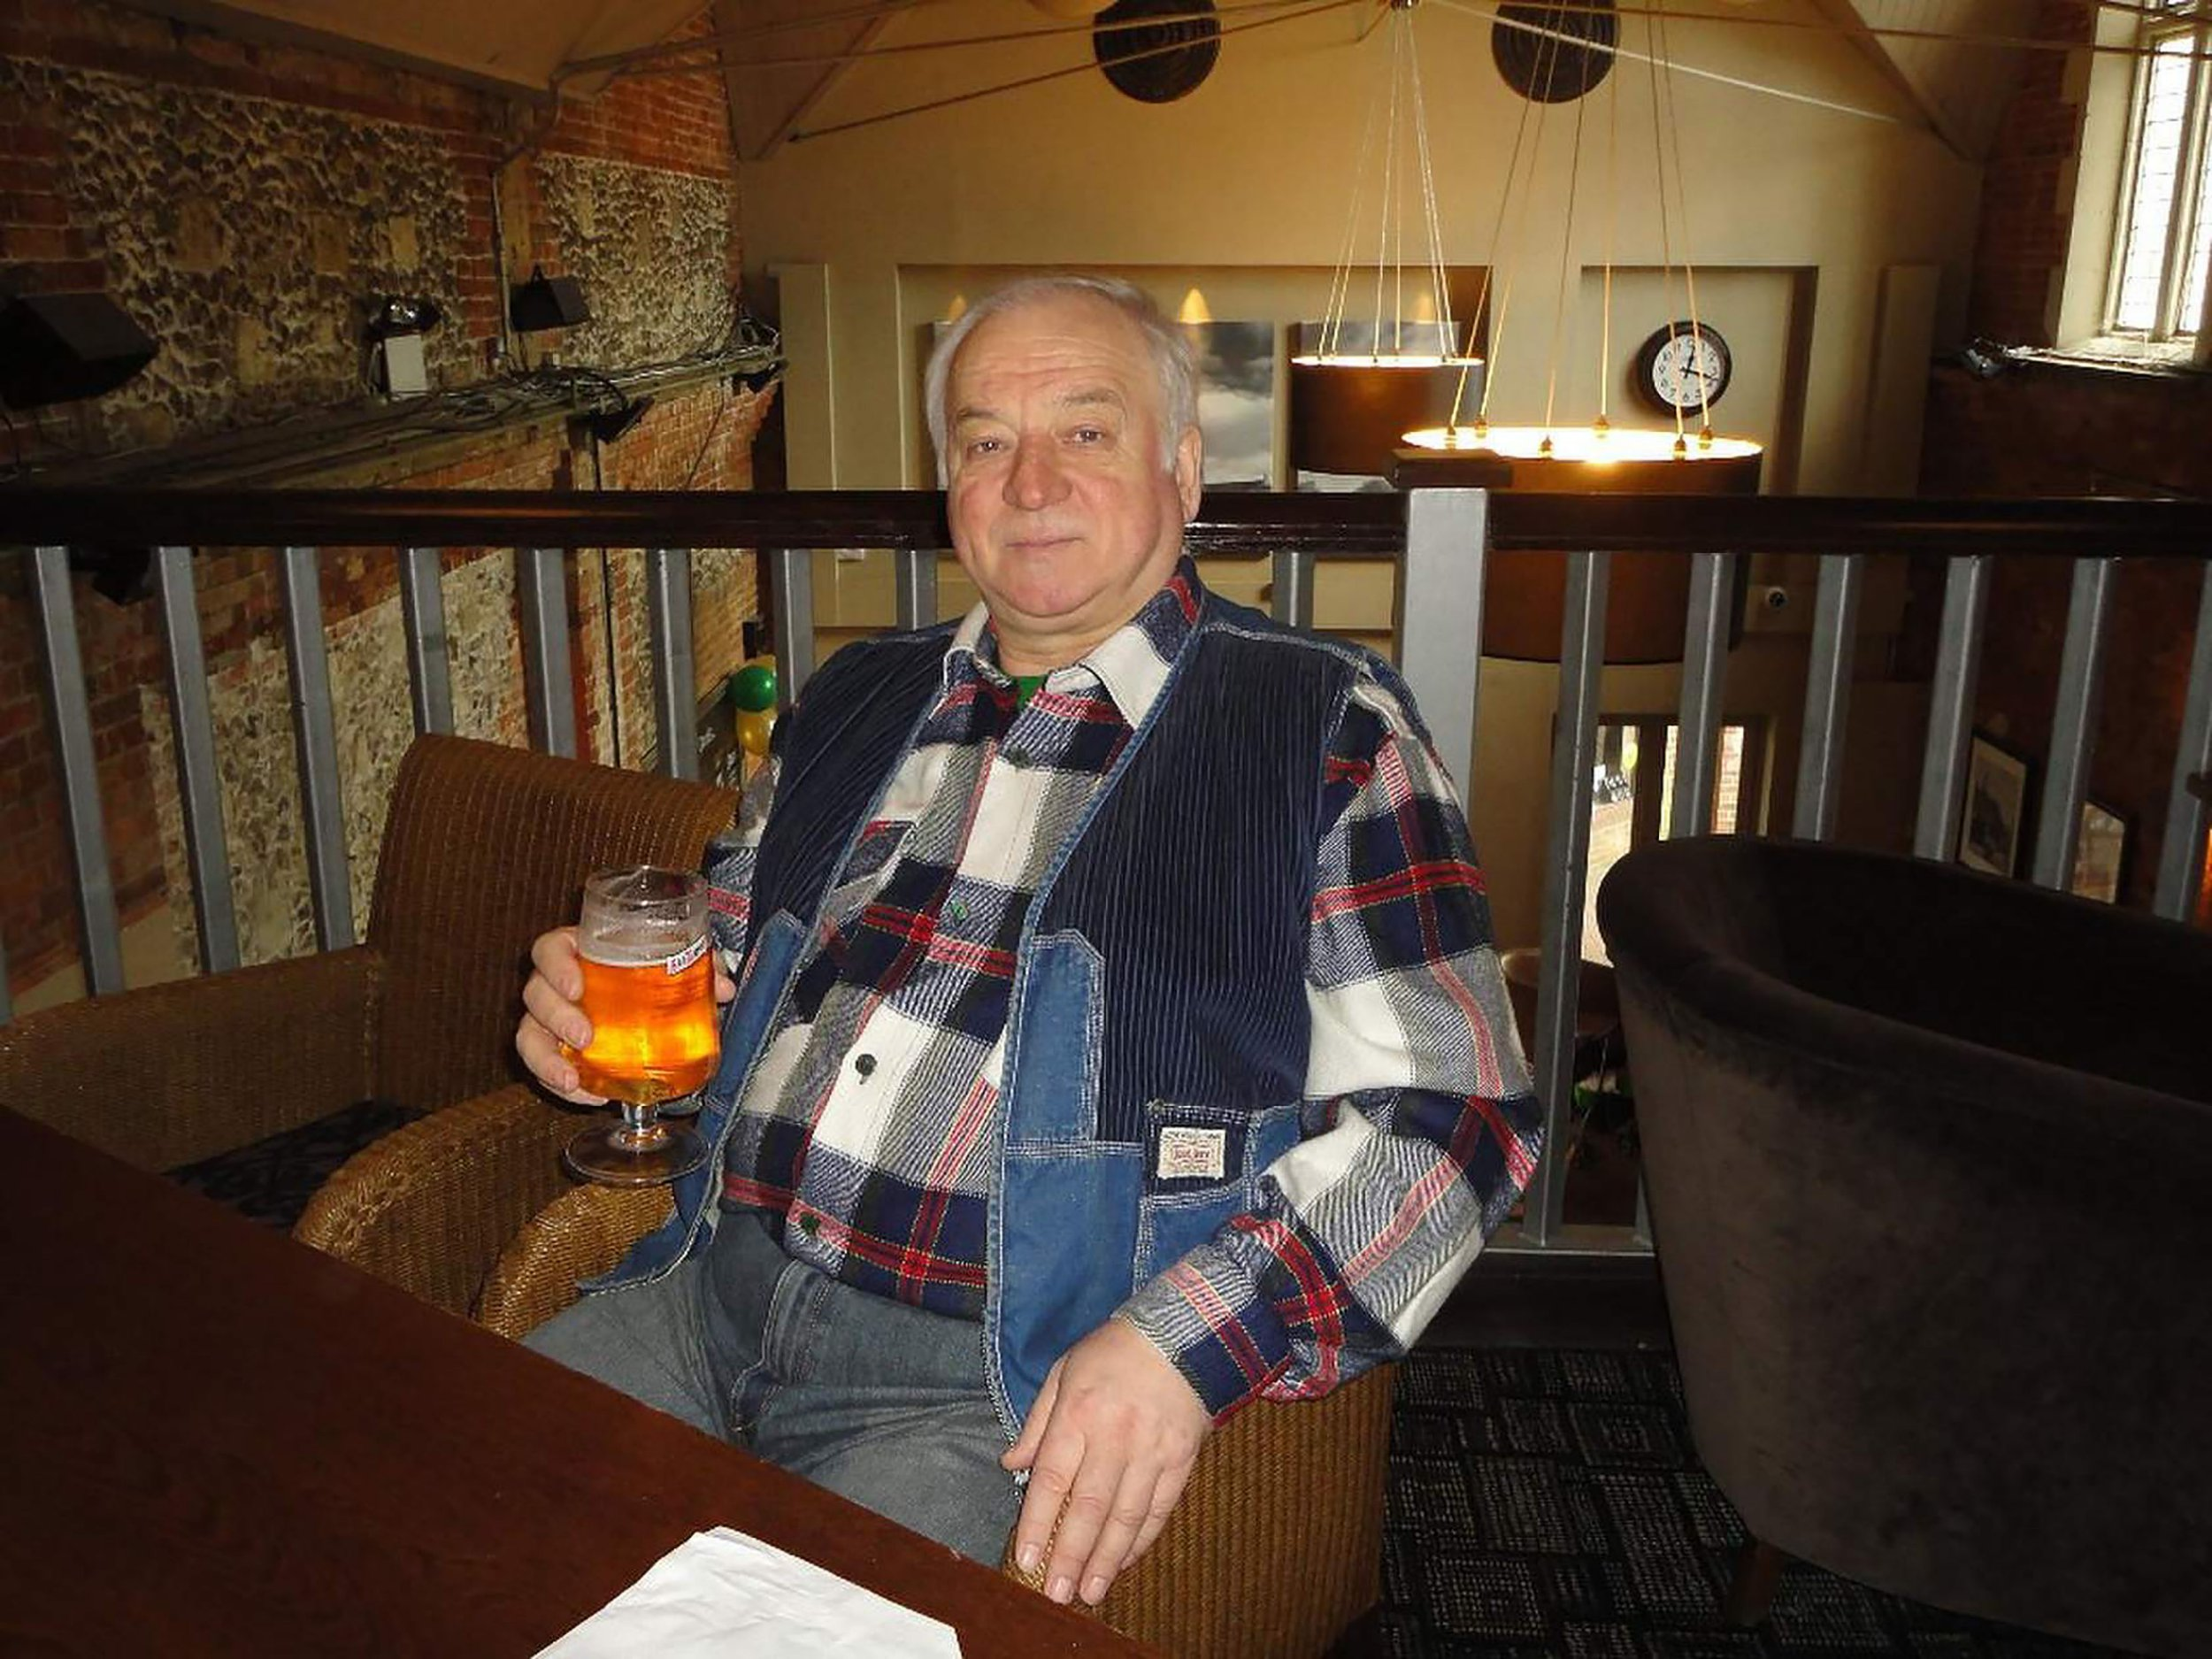 Sergei Skripal 'improving rapidly and no longer in critical condition'